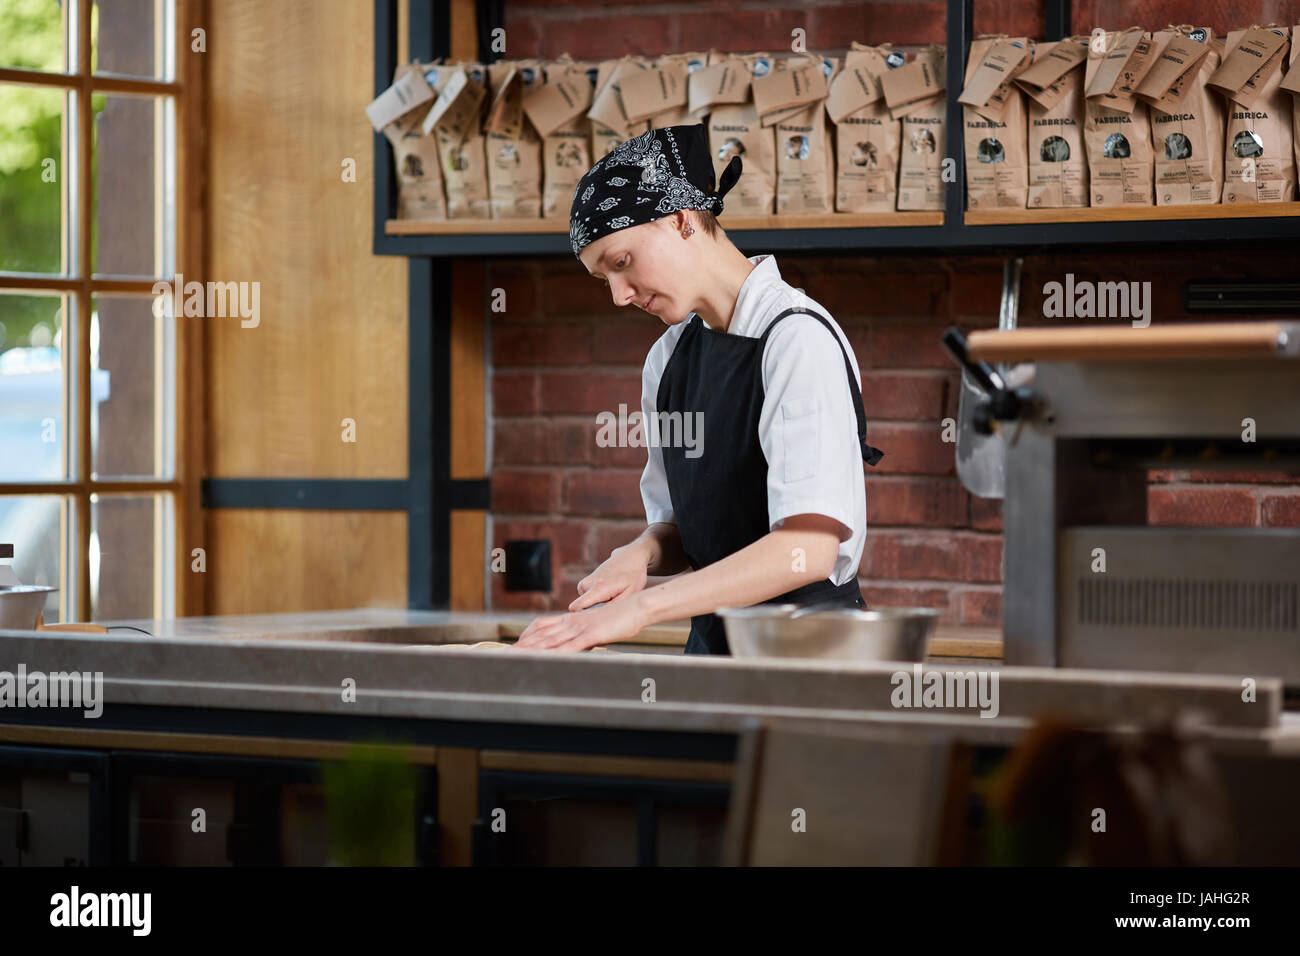 Woman slicing noodles in cafe - Stock Image